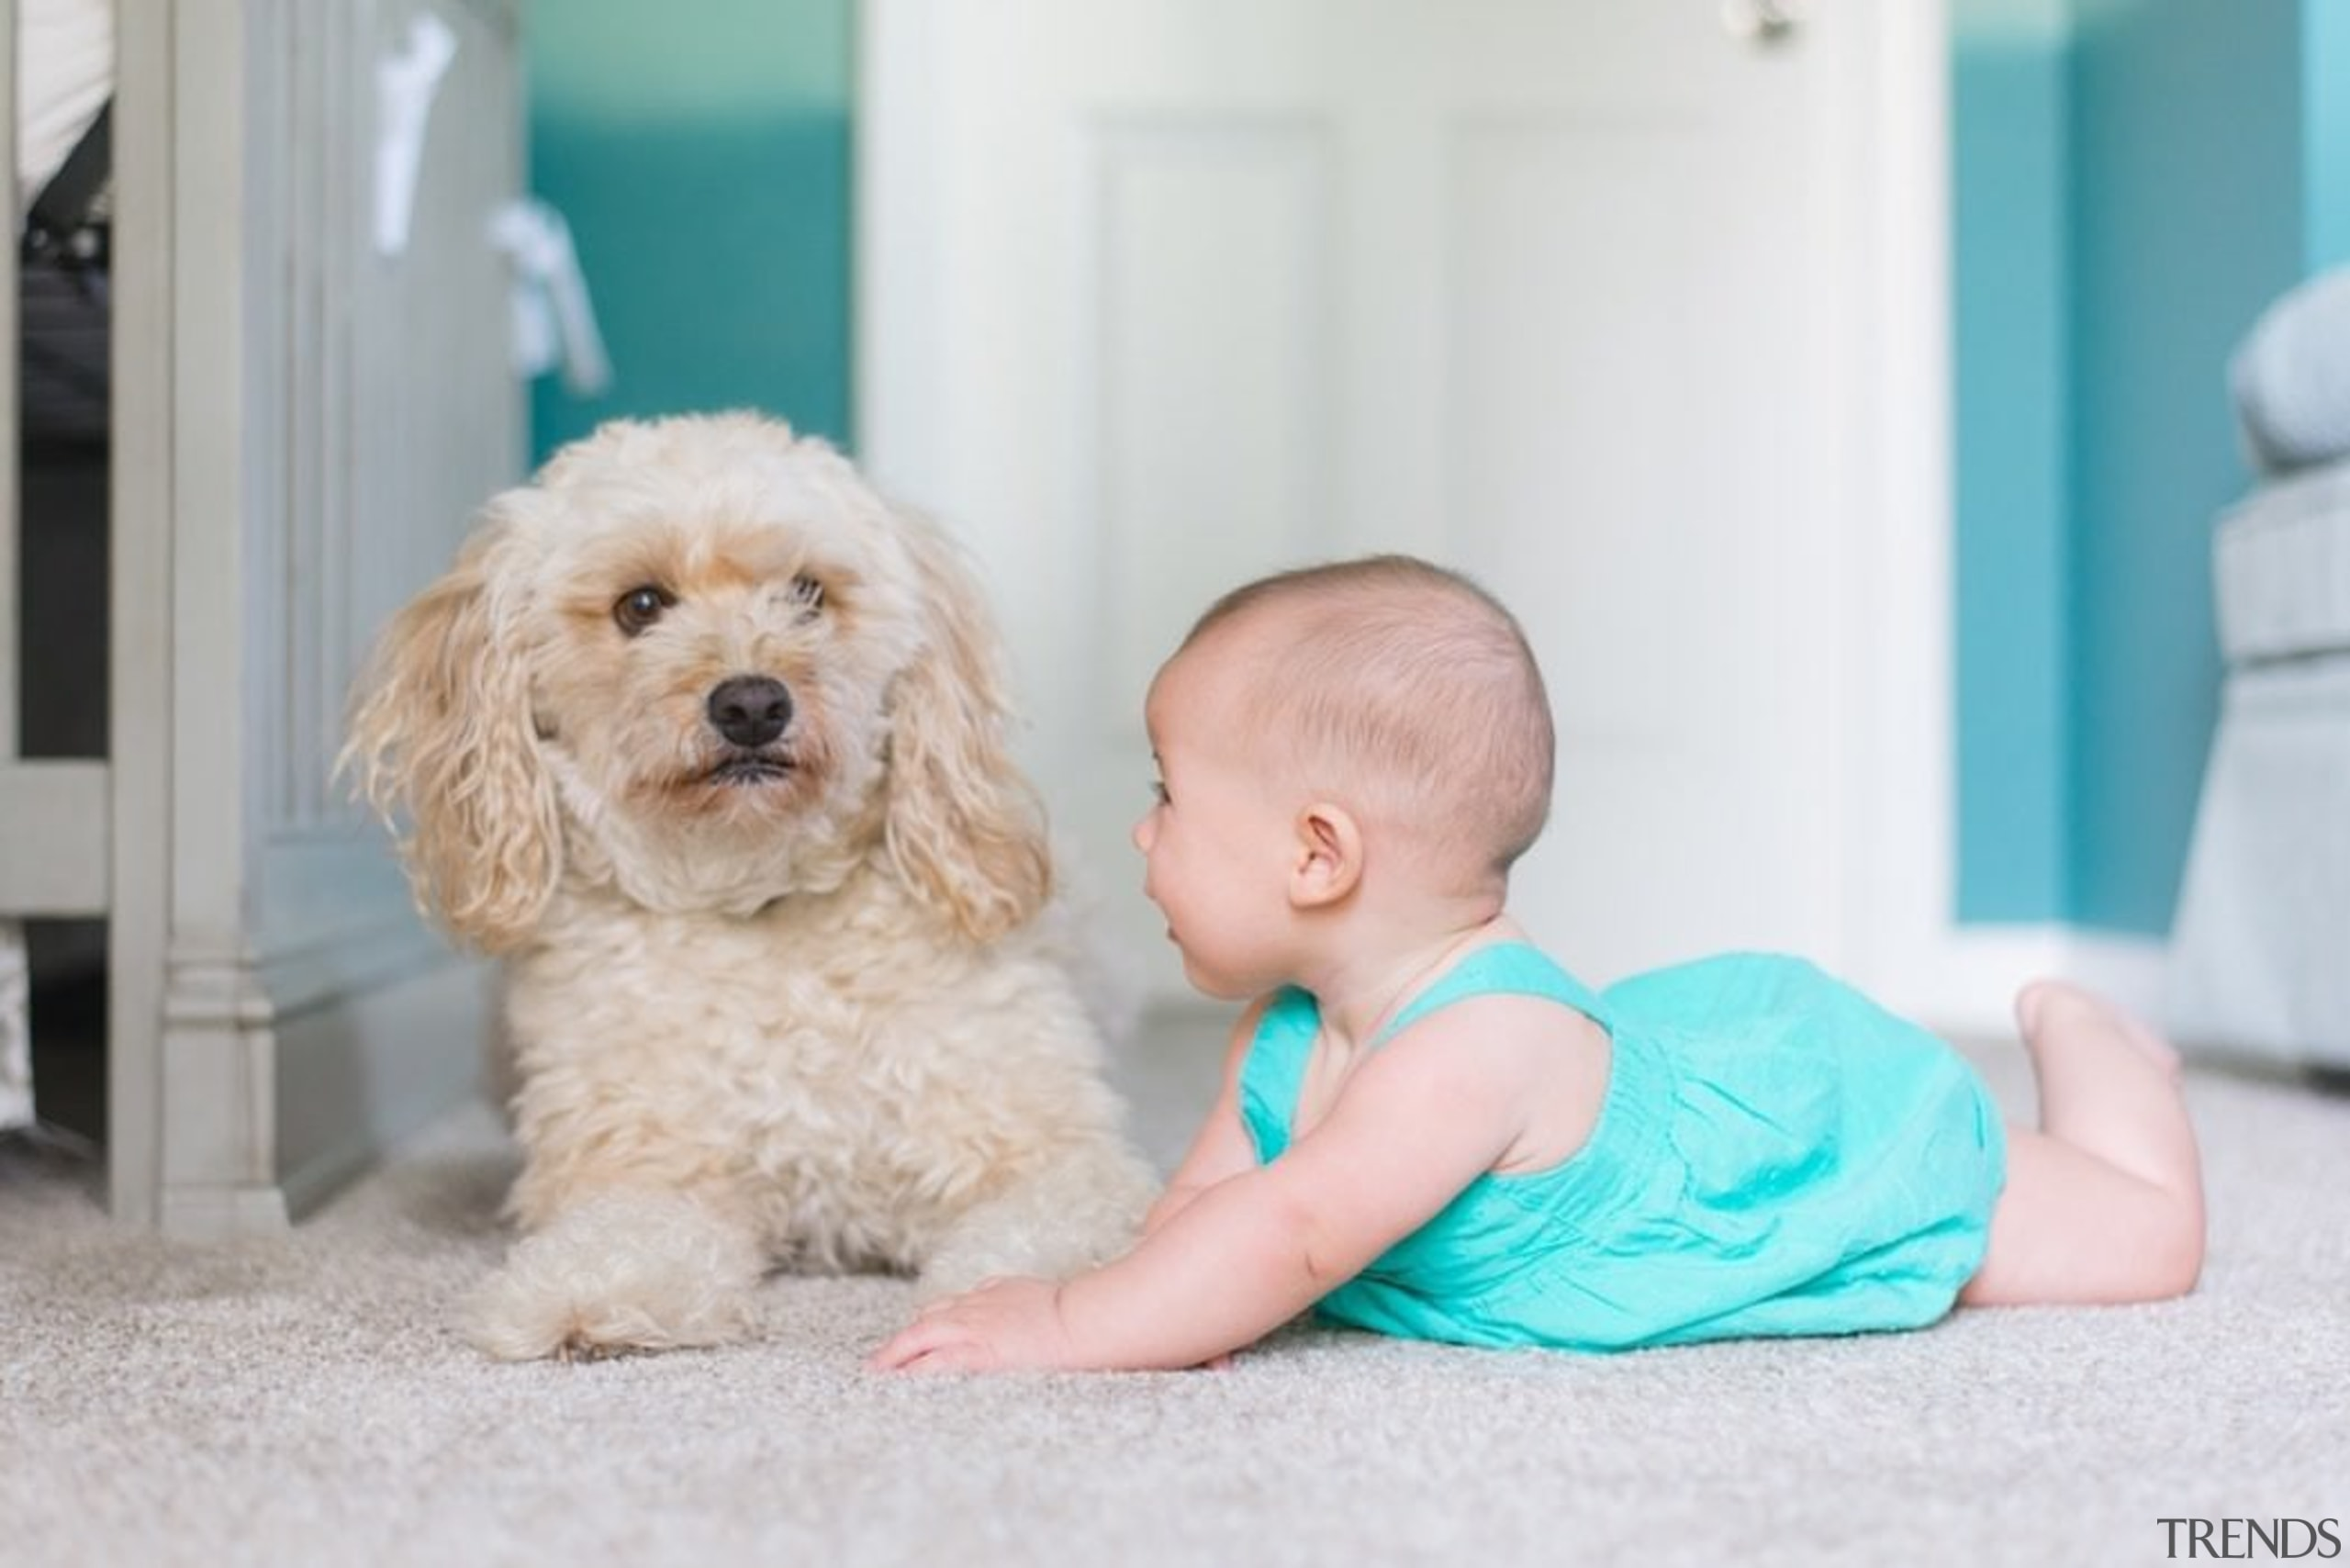 It's time to baby-proof your house. - It's child, cockapoo, companion dog, dog, dog breed, dog clothes, dog crossbreeds, dog like mammal, puppy, snout, toddler, gray, white